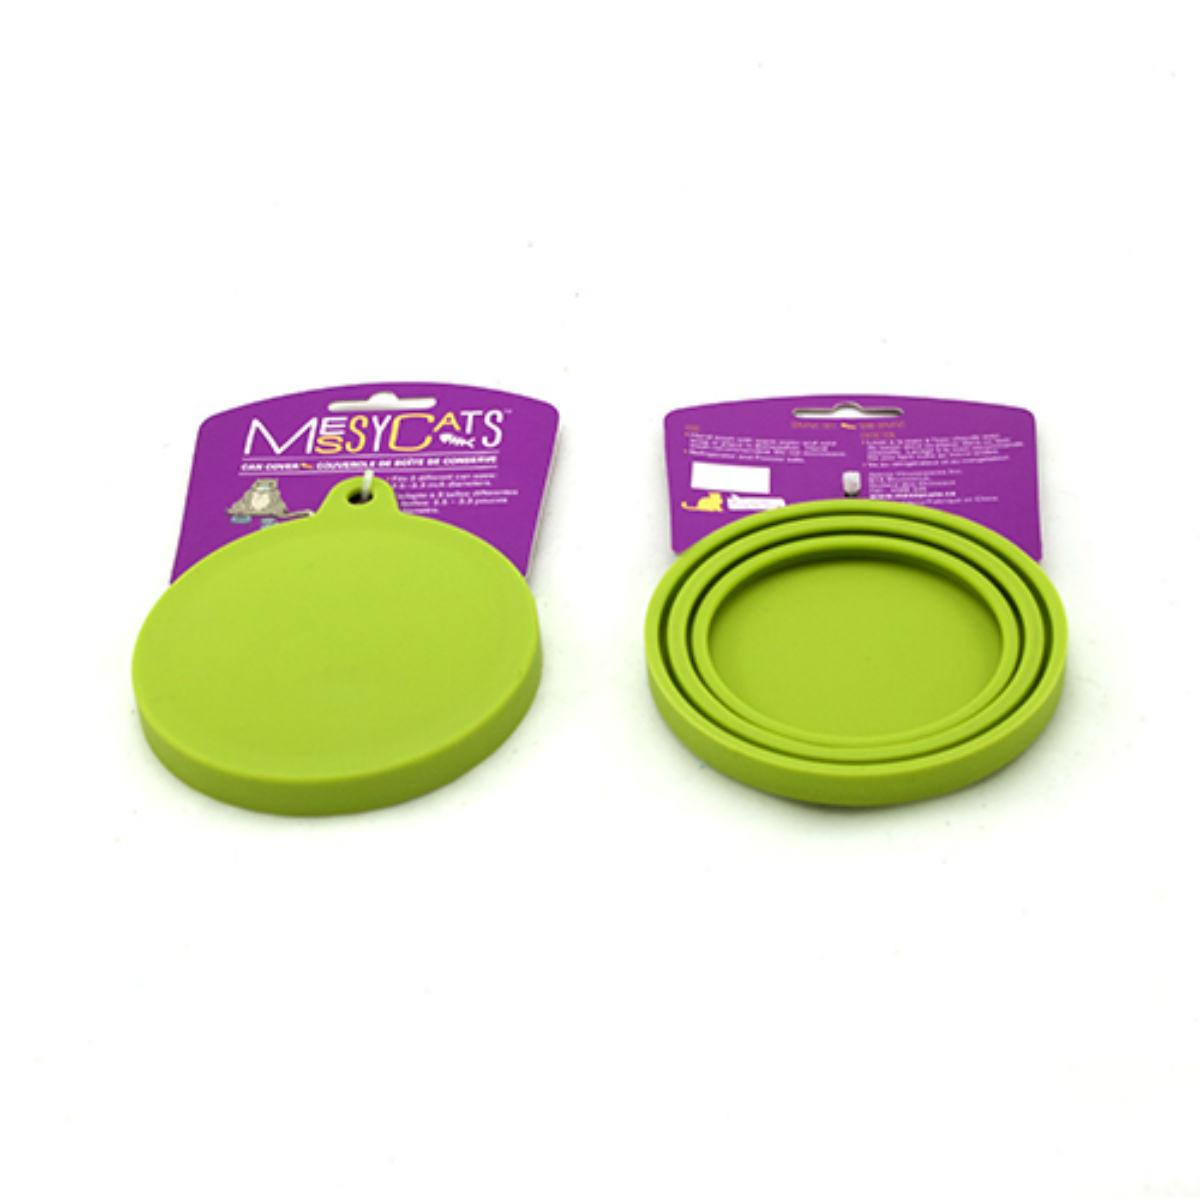 Messy Mutts Can Cover Pet Food Saver - Green